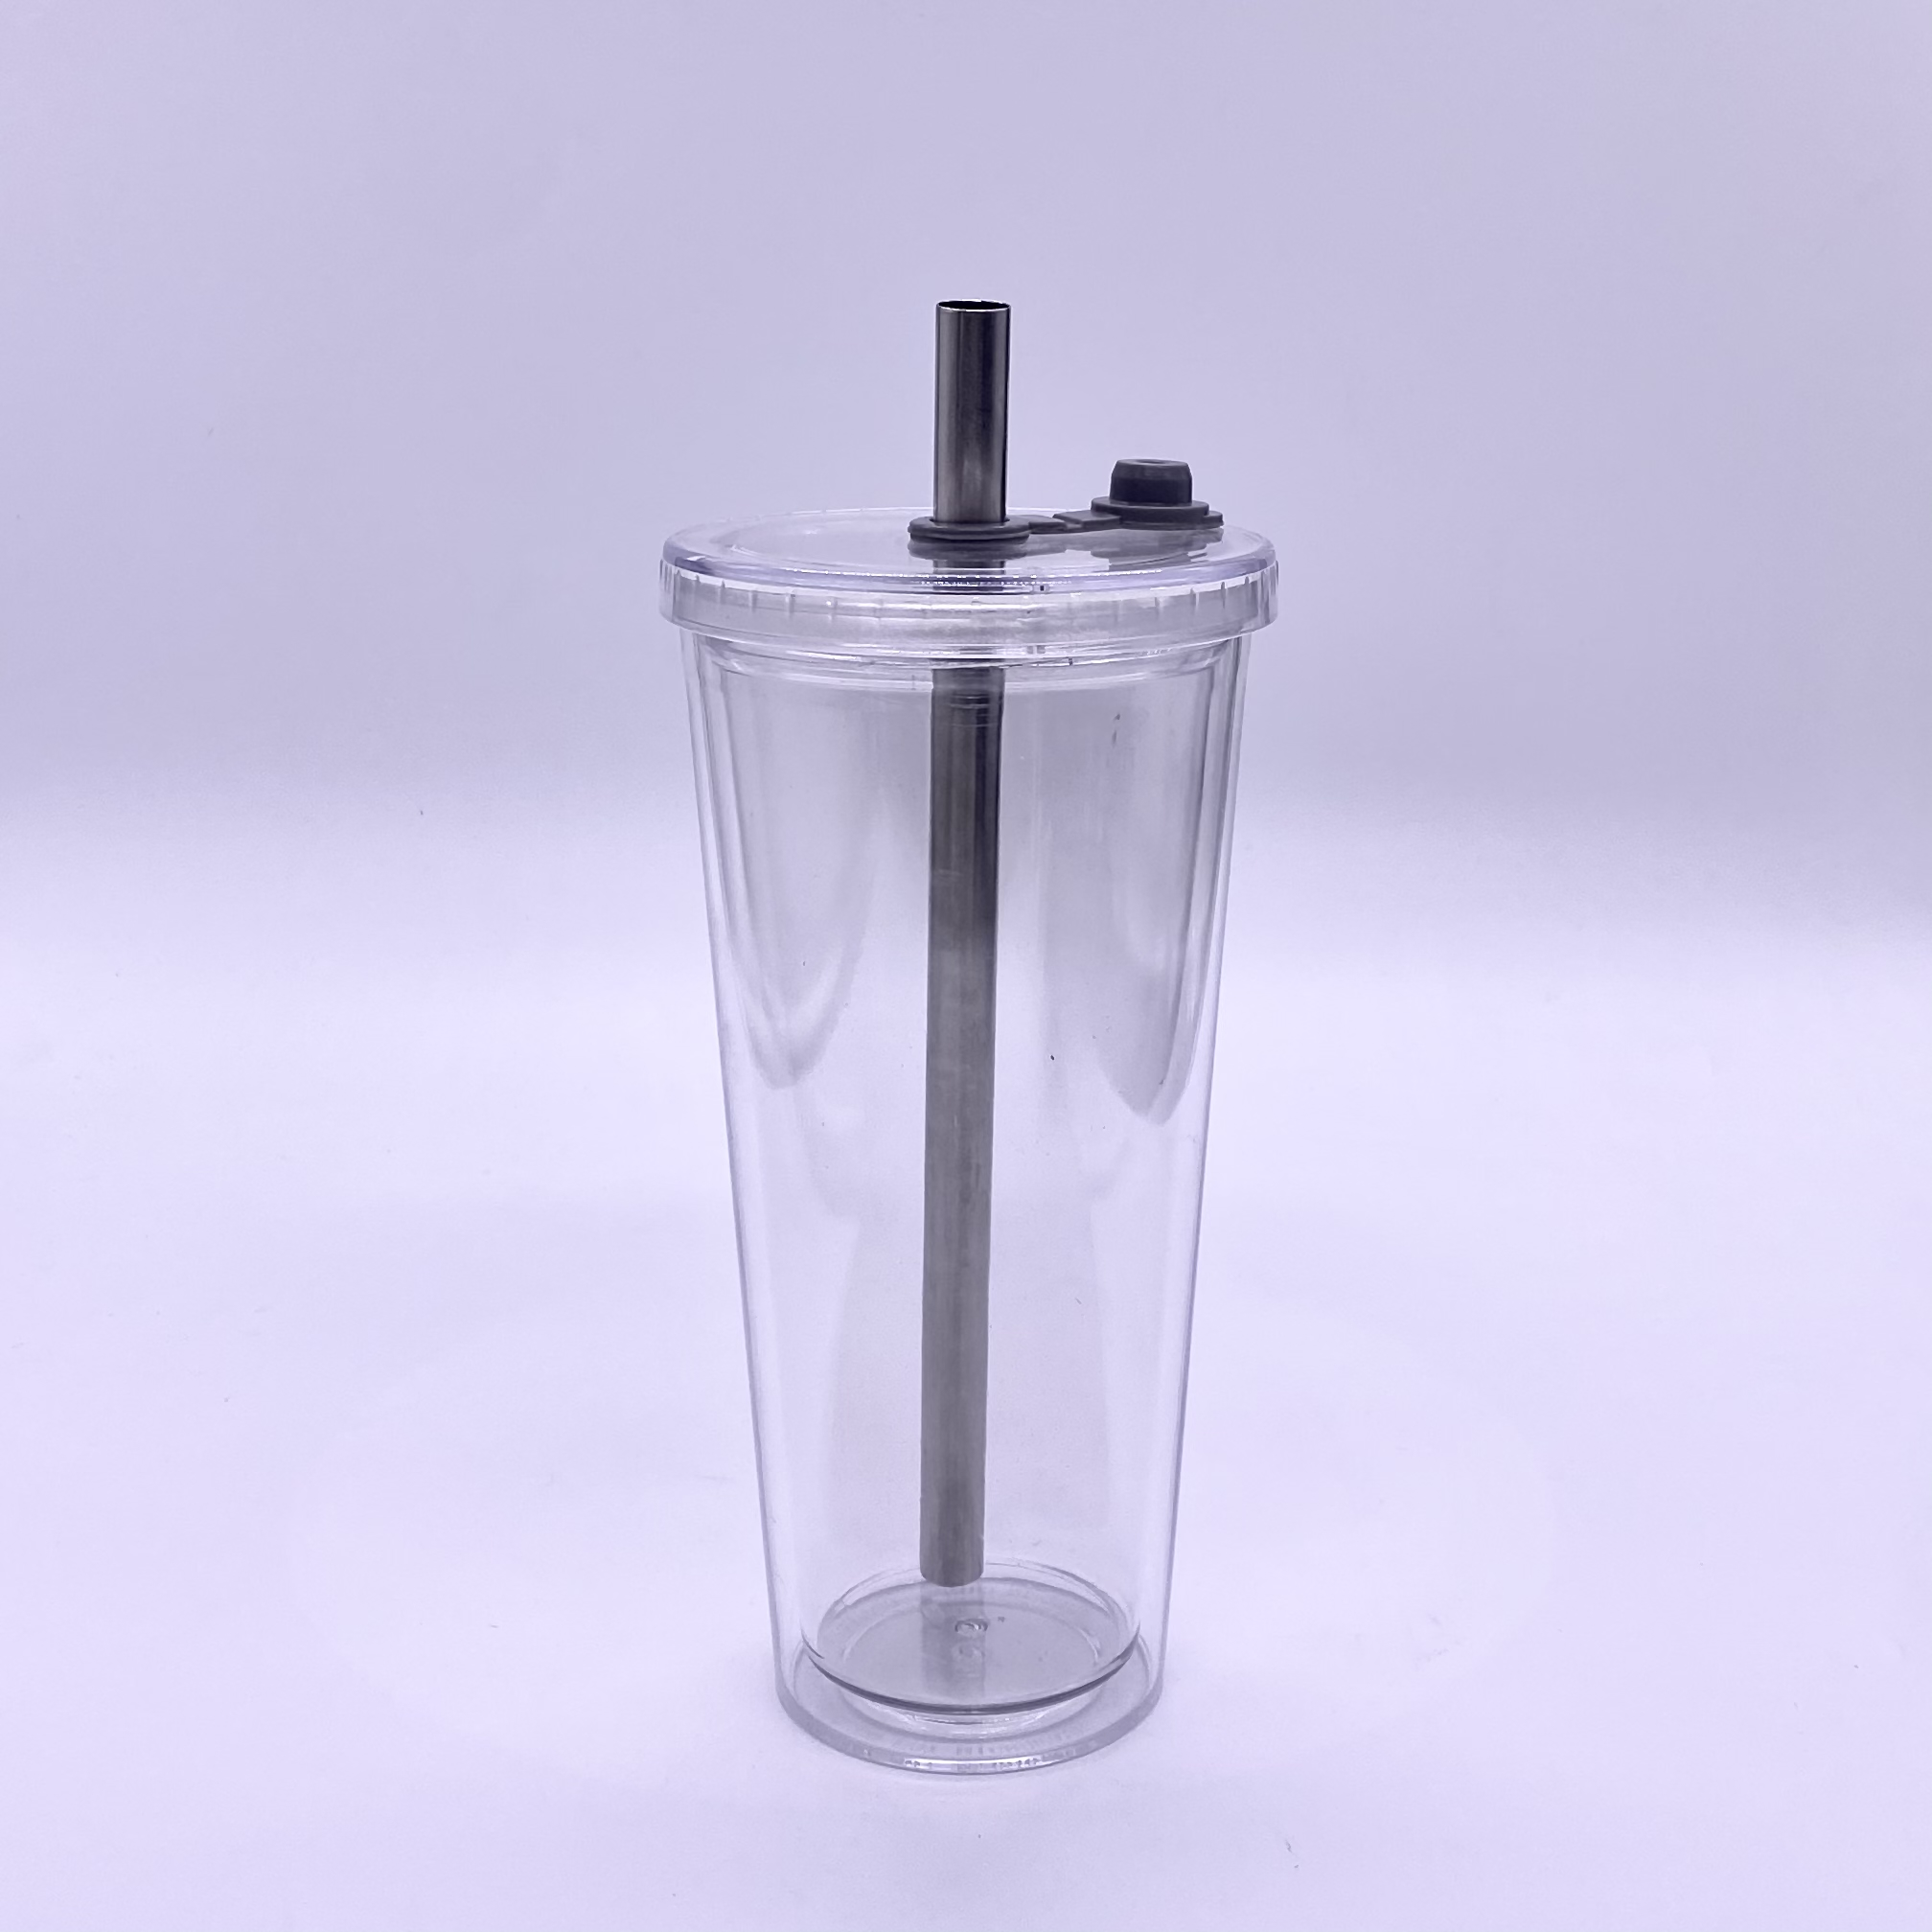 New Design 16oz Clear Acrylic Double Wall BPA Free Skinny Tumbler with Silicone Plug Plastic Tumbler with Straw and Lid